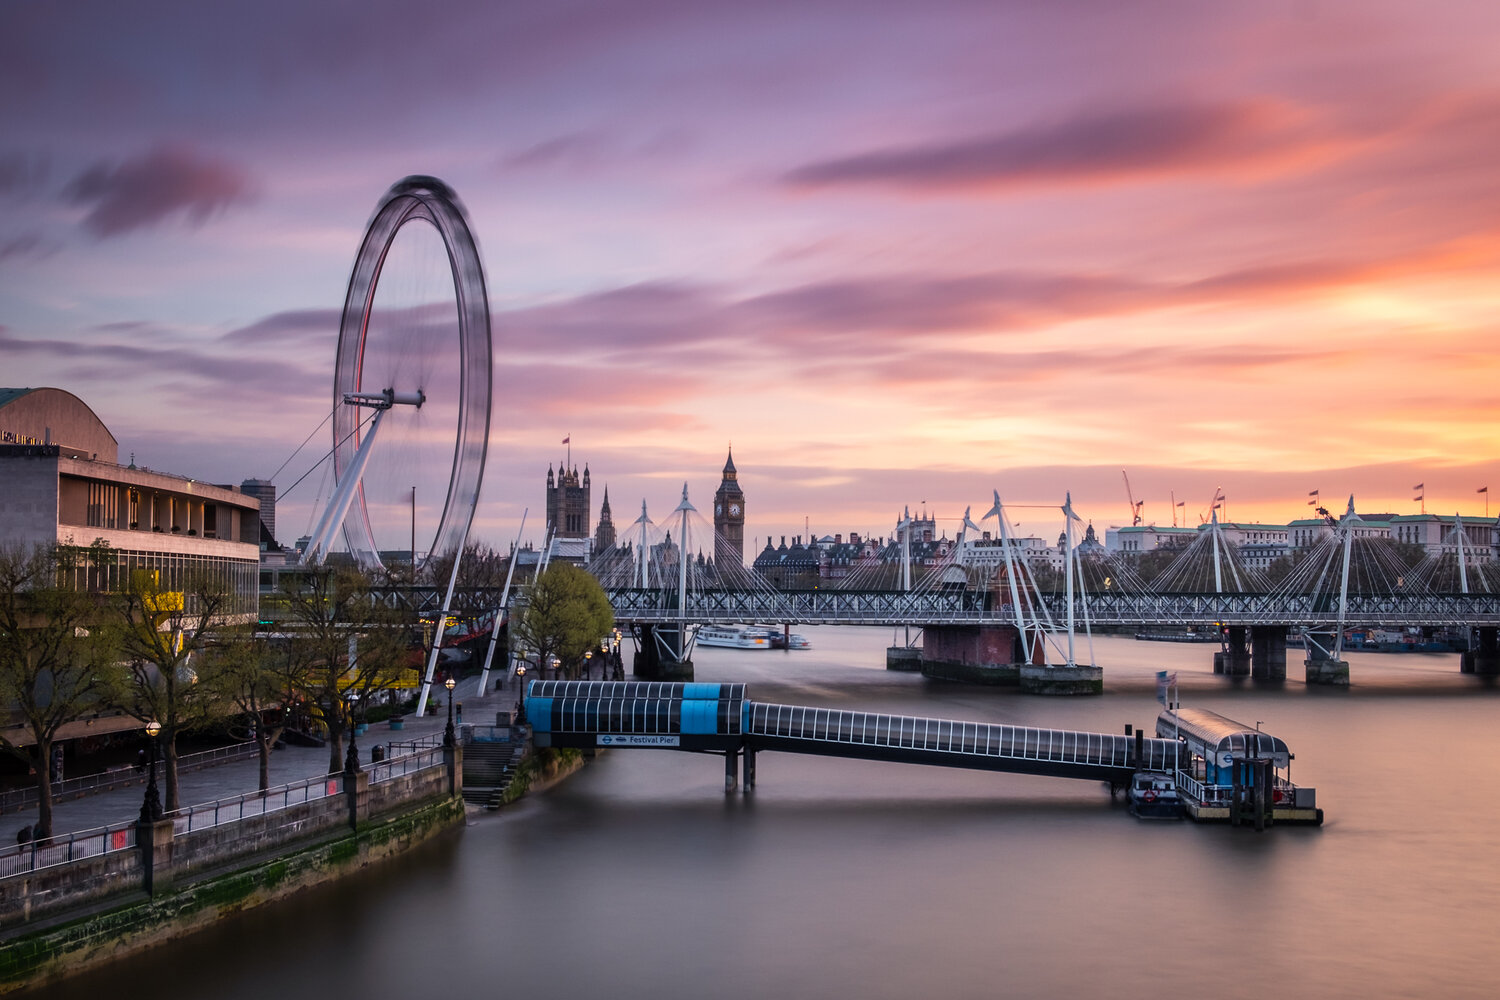 Sunset Over Westminster | Fujifilm XT-10 | XF18-55mm | 23mm | 58 Seconds | f/11 | ISO200